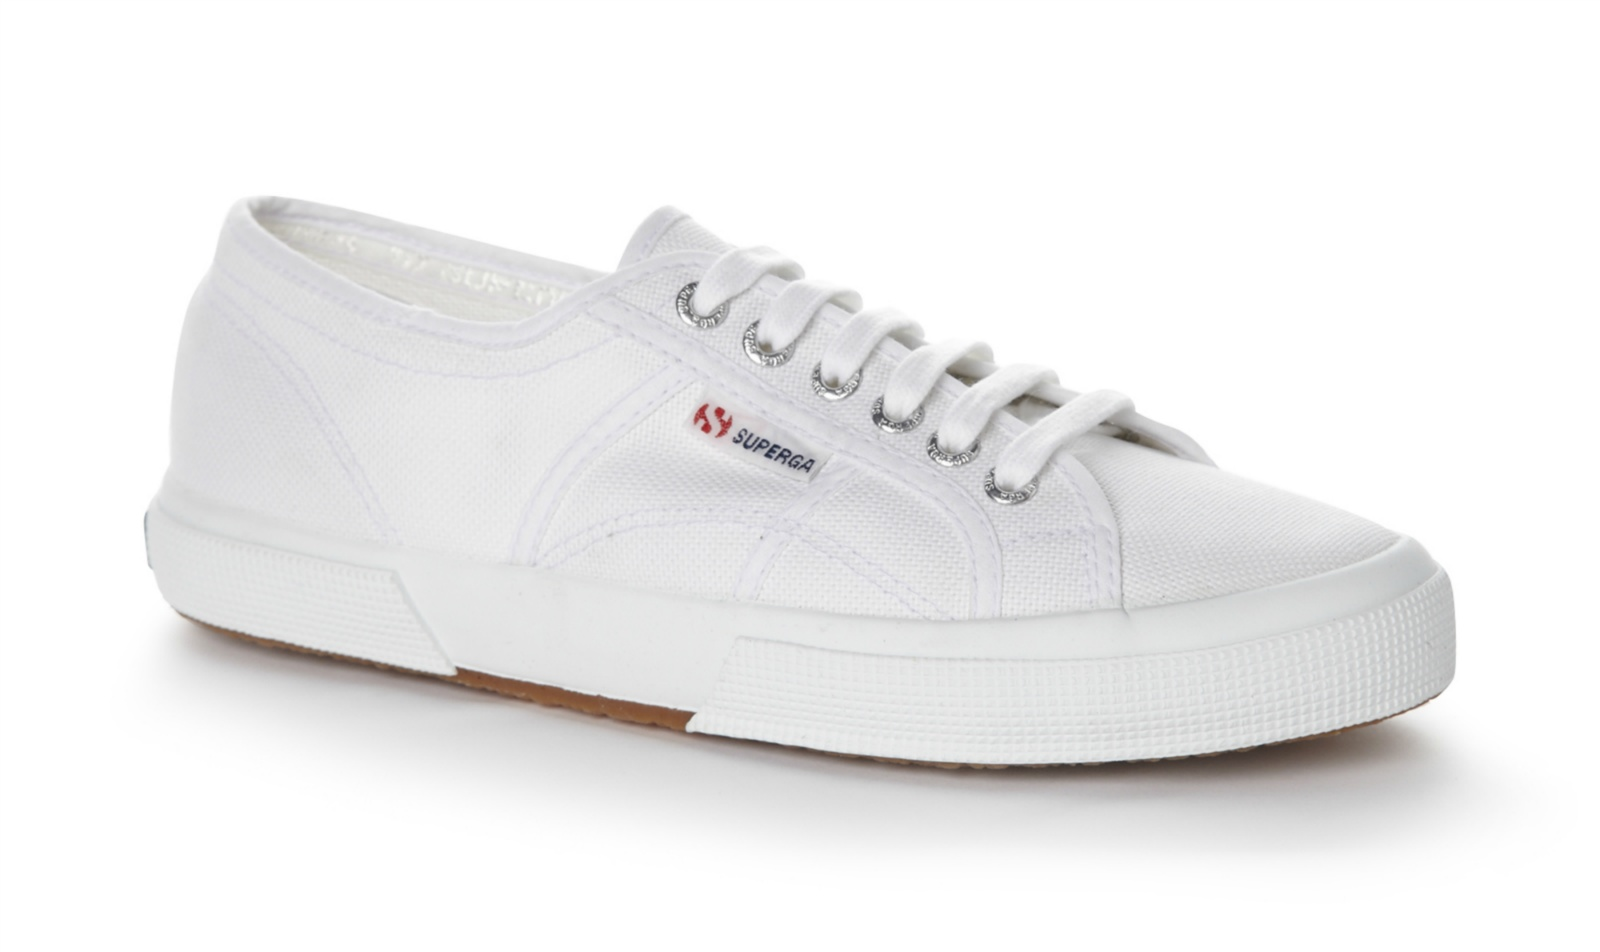 superga unisex 2750 cotu classic canvas trainers tennis